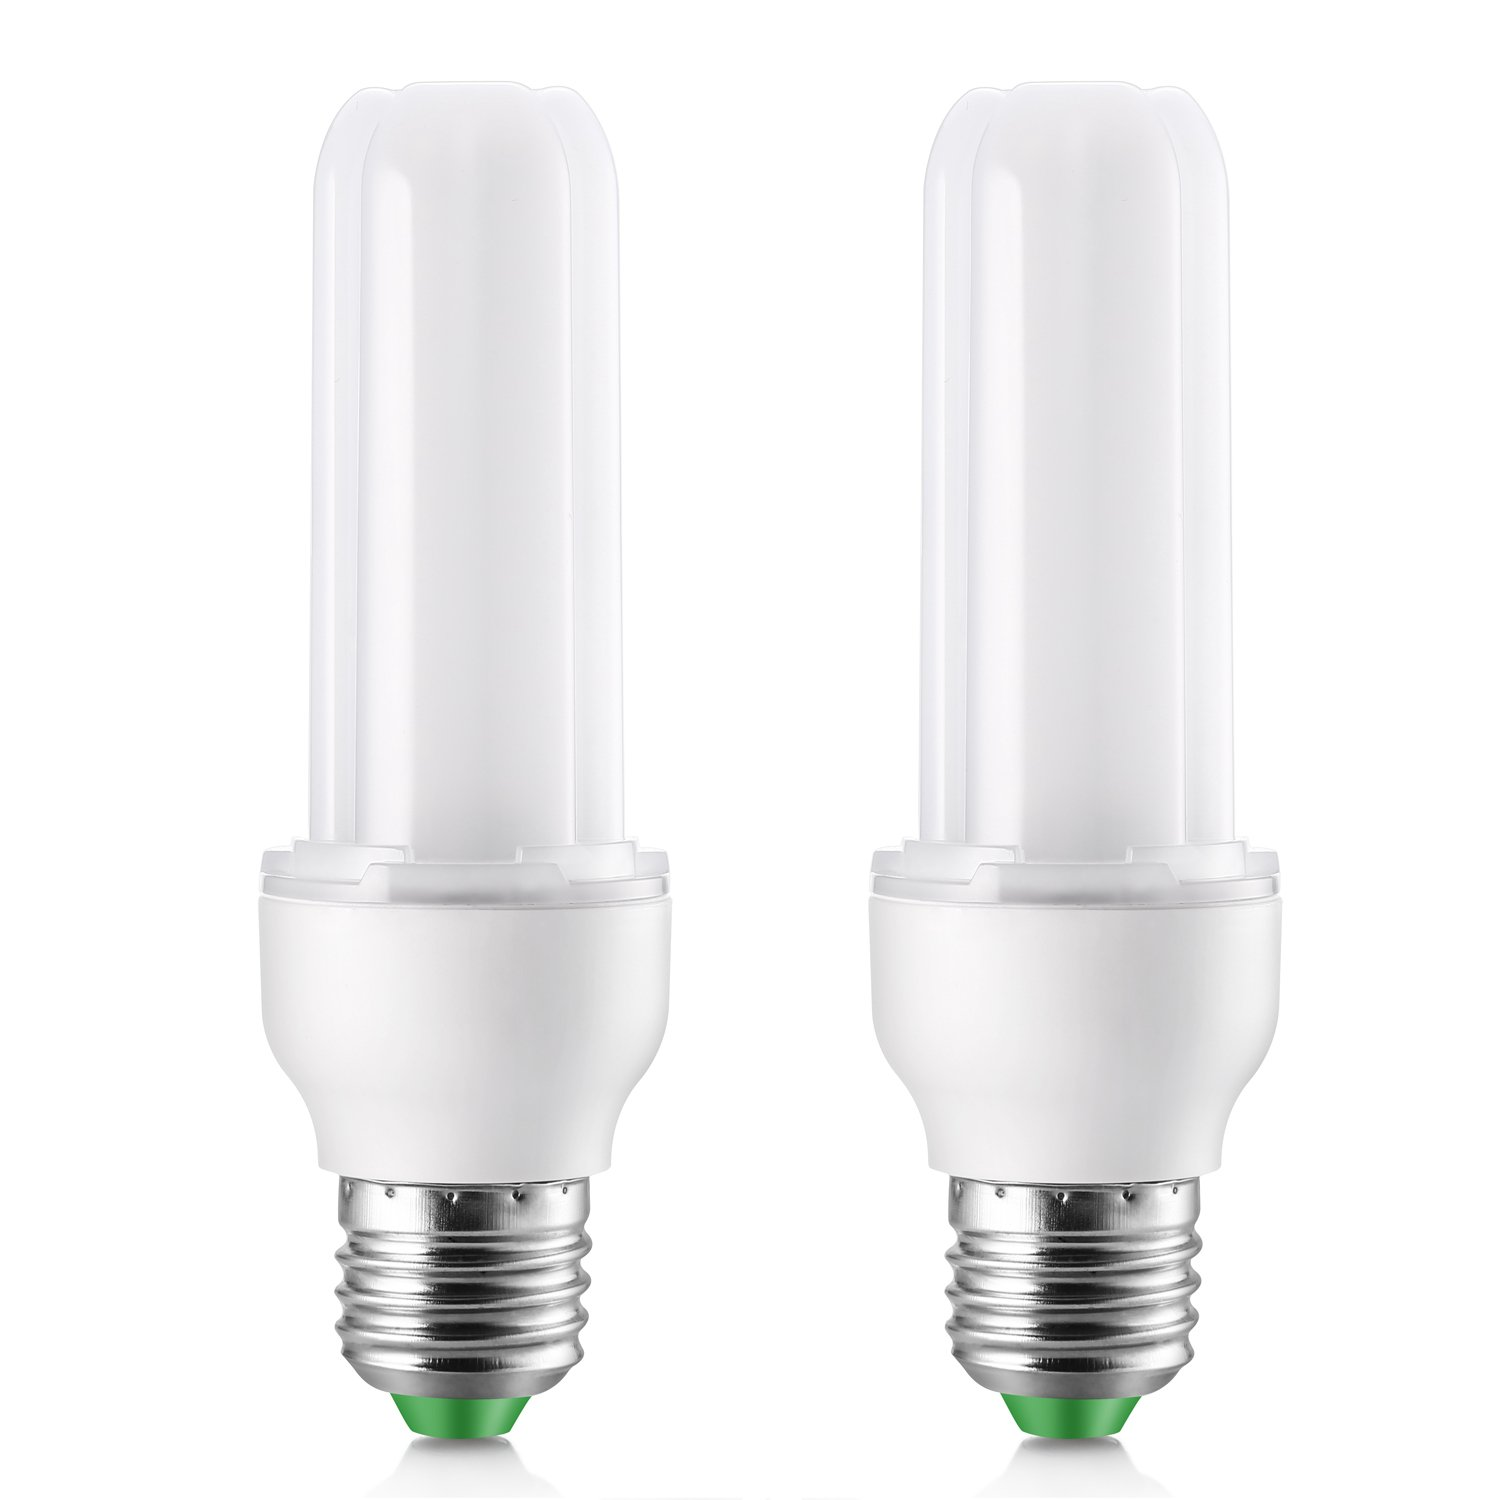 Elrigs LED Light Bulb Stick, 9W (75W Equivalent), Warm White (3000K), E26 Base, Pack of 2, 900lm, Replacement for 18W CFL